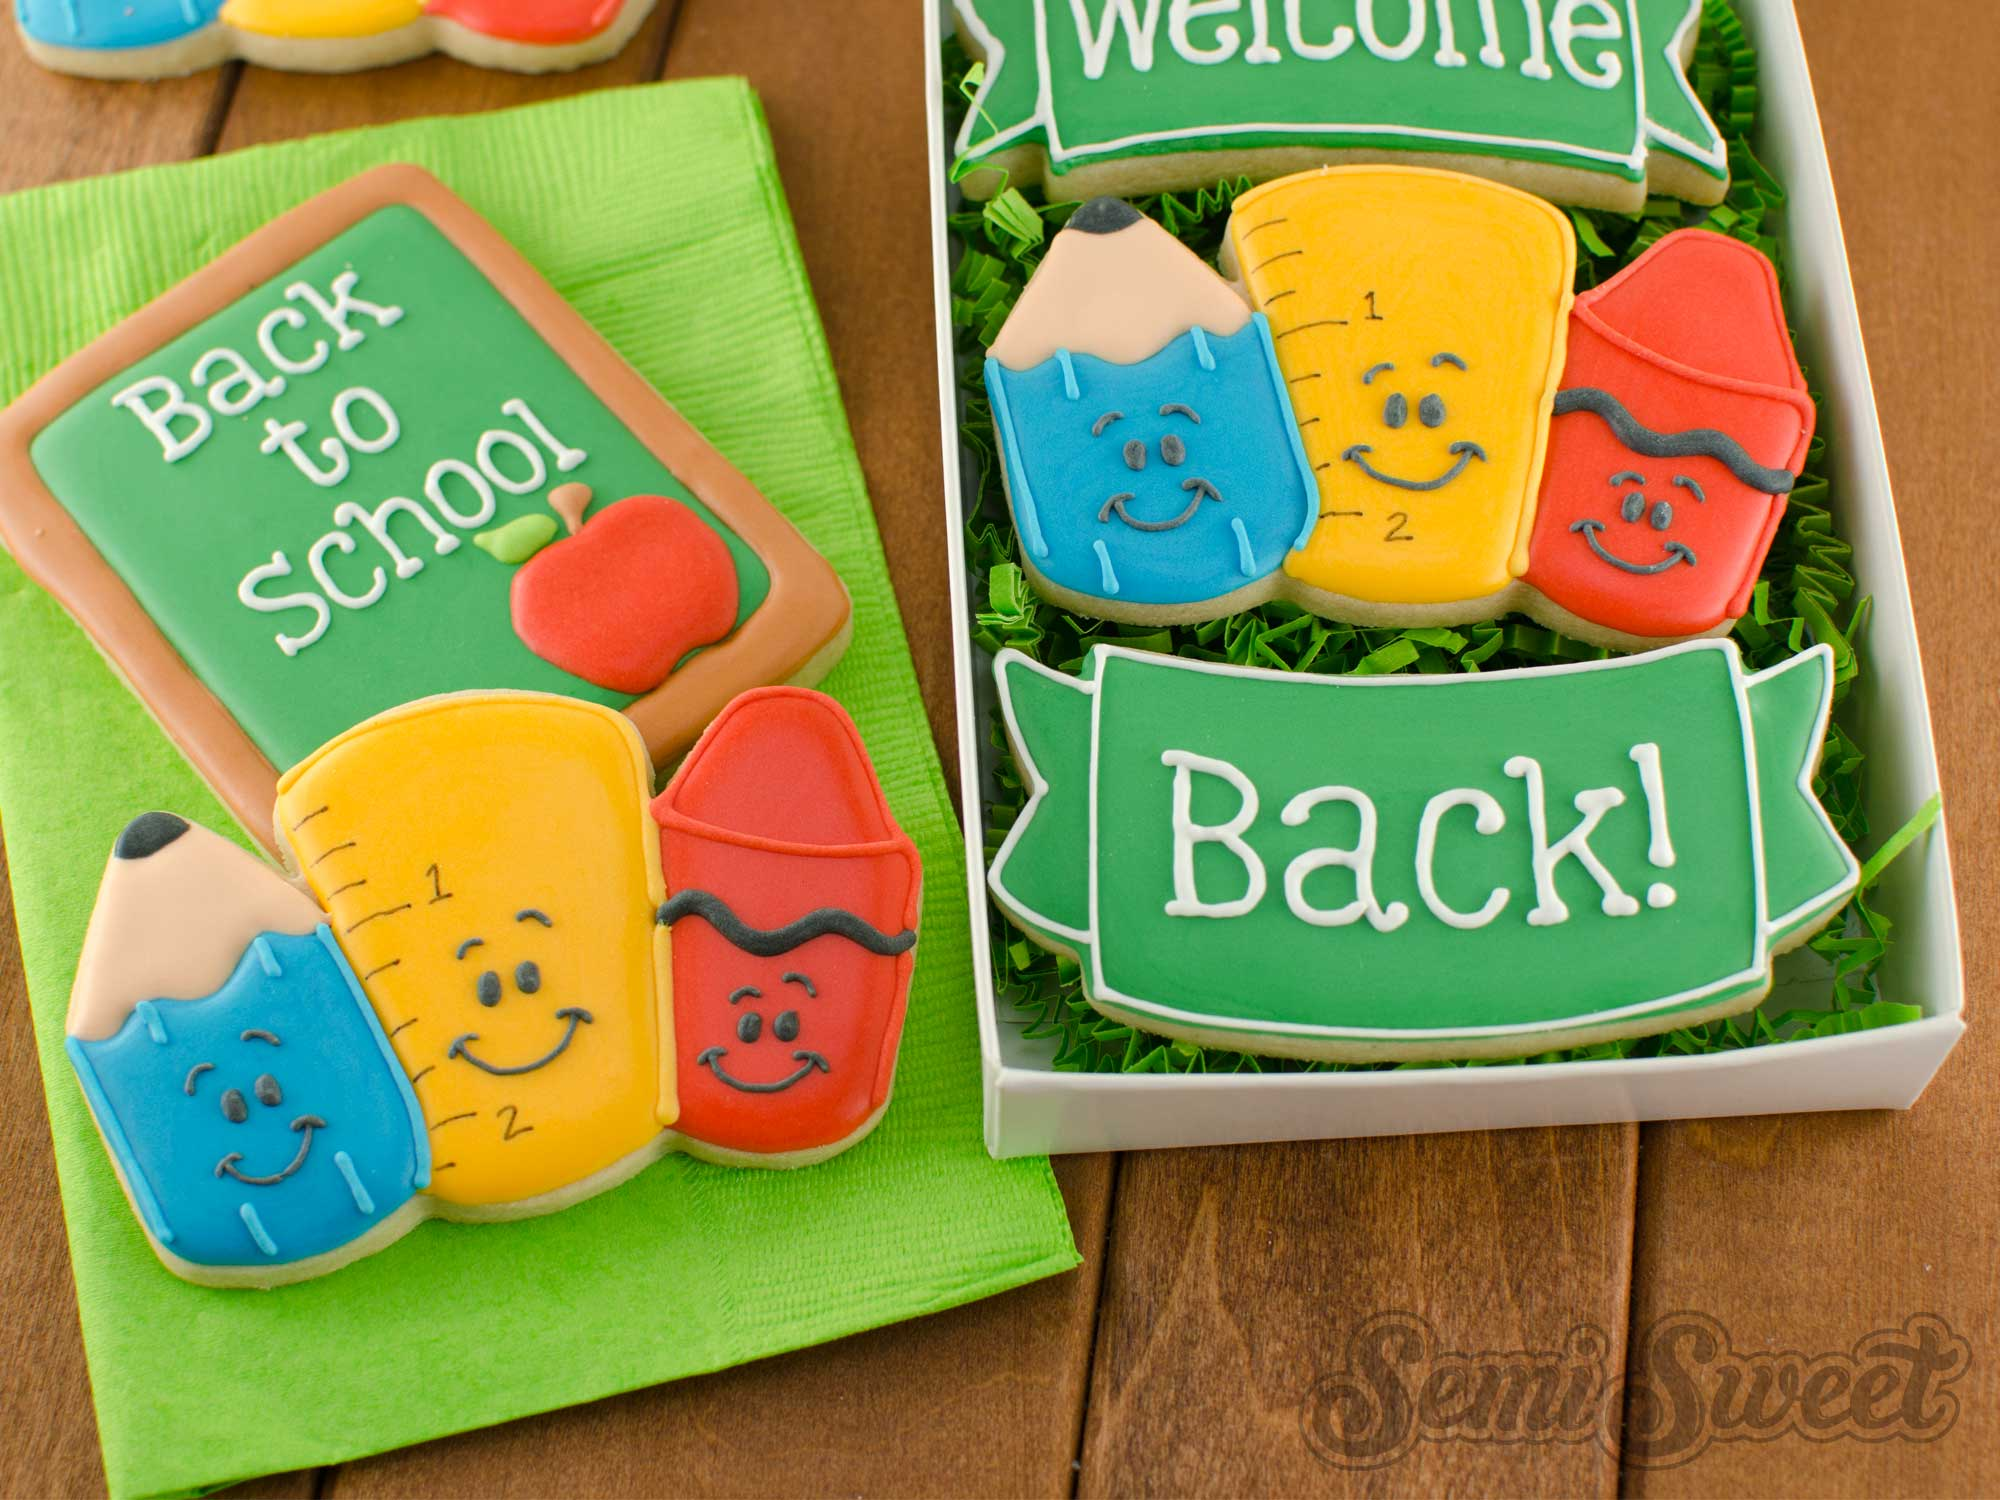 How to Make School Supply Cookies